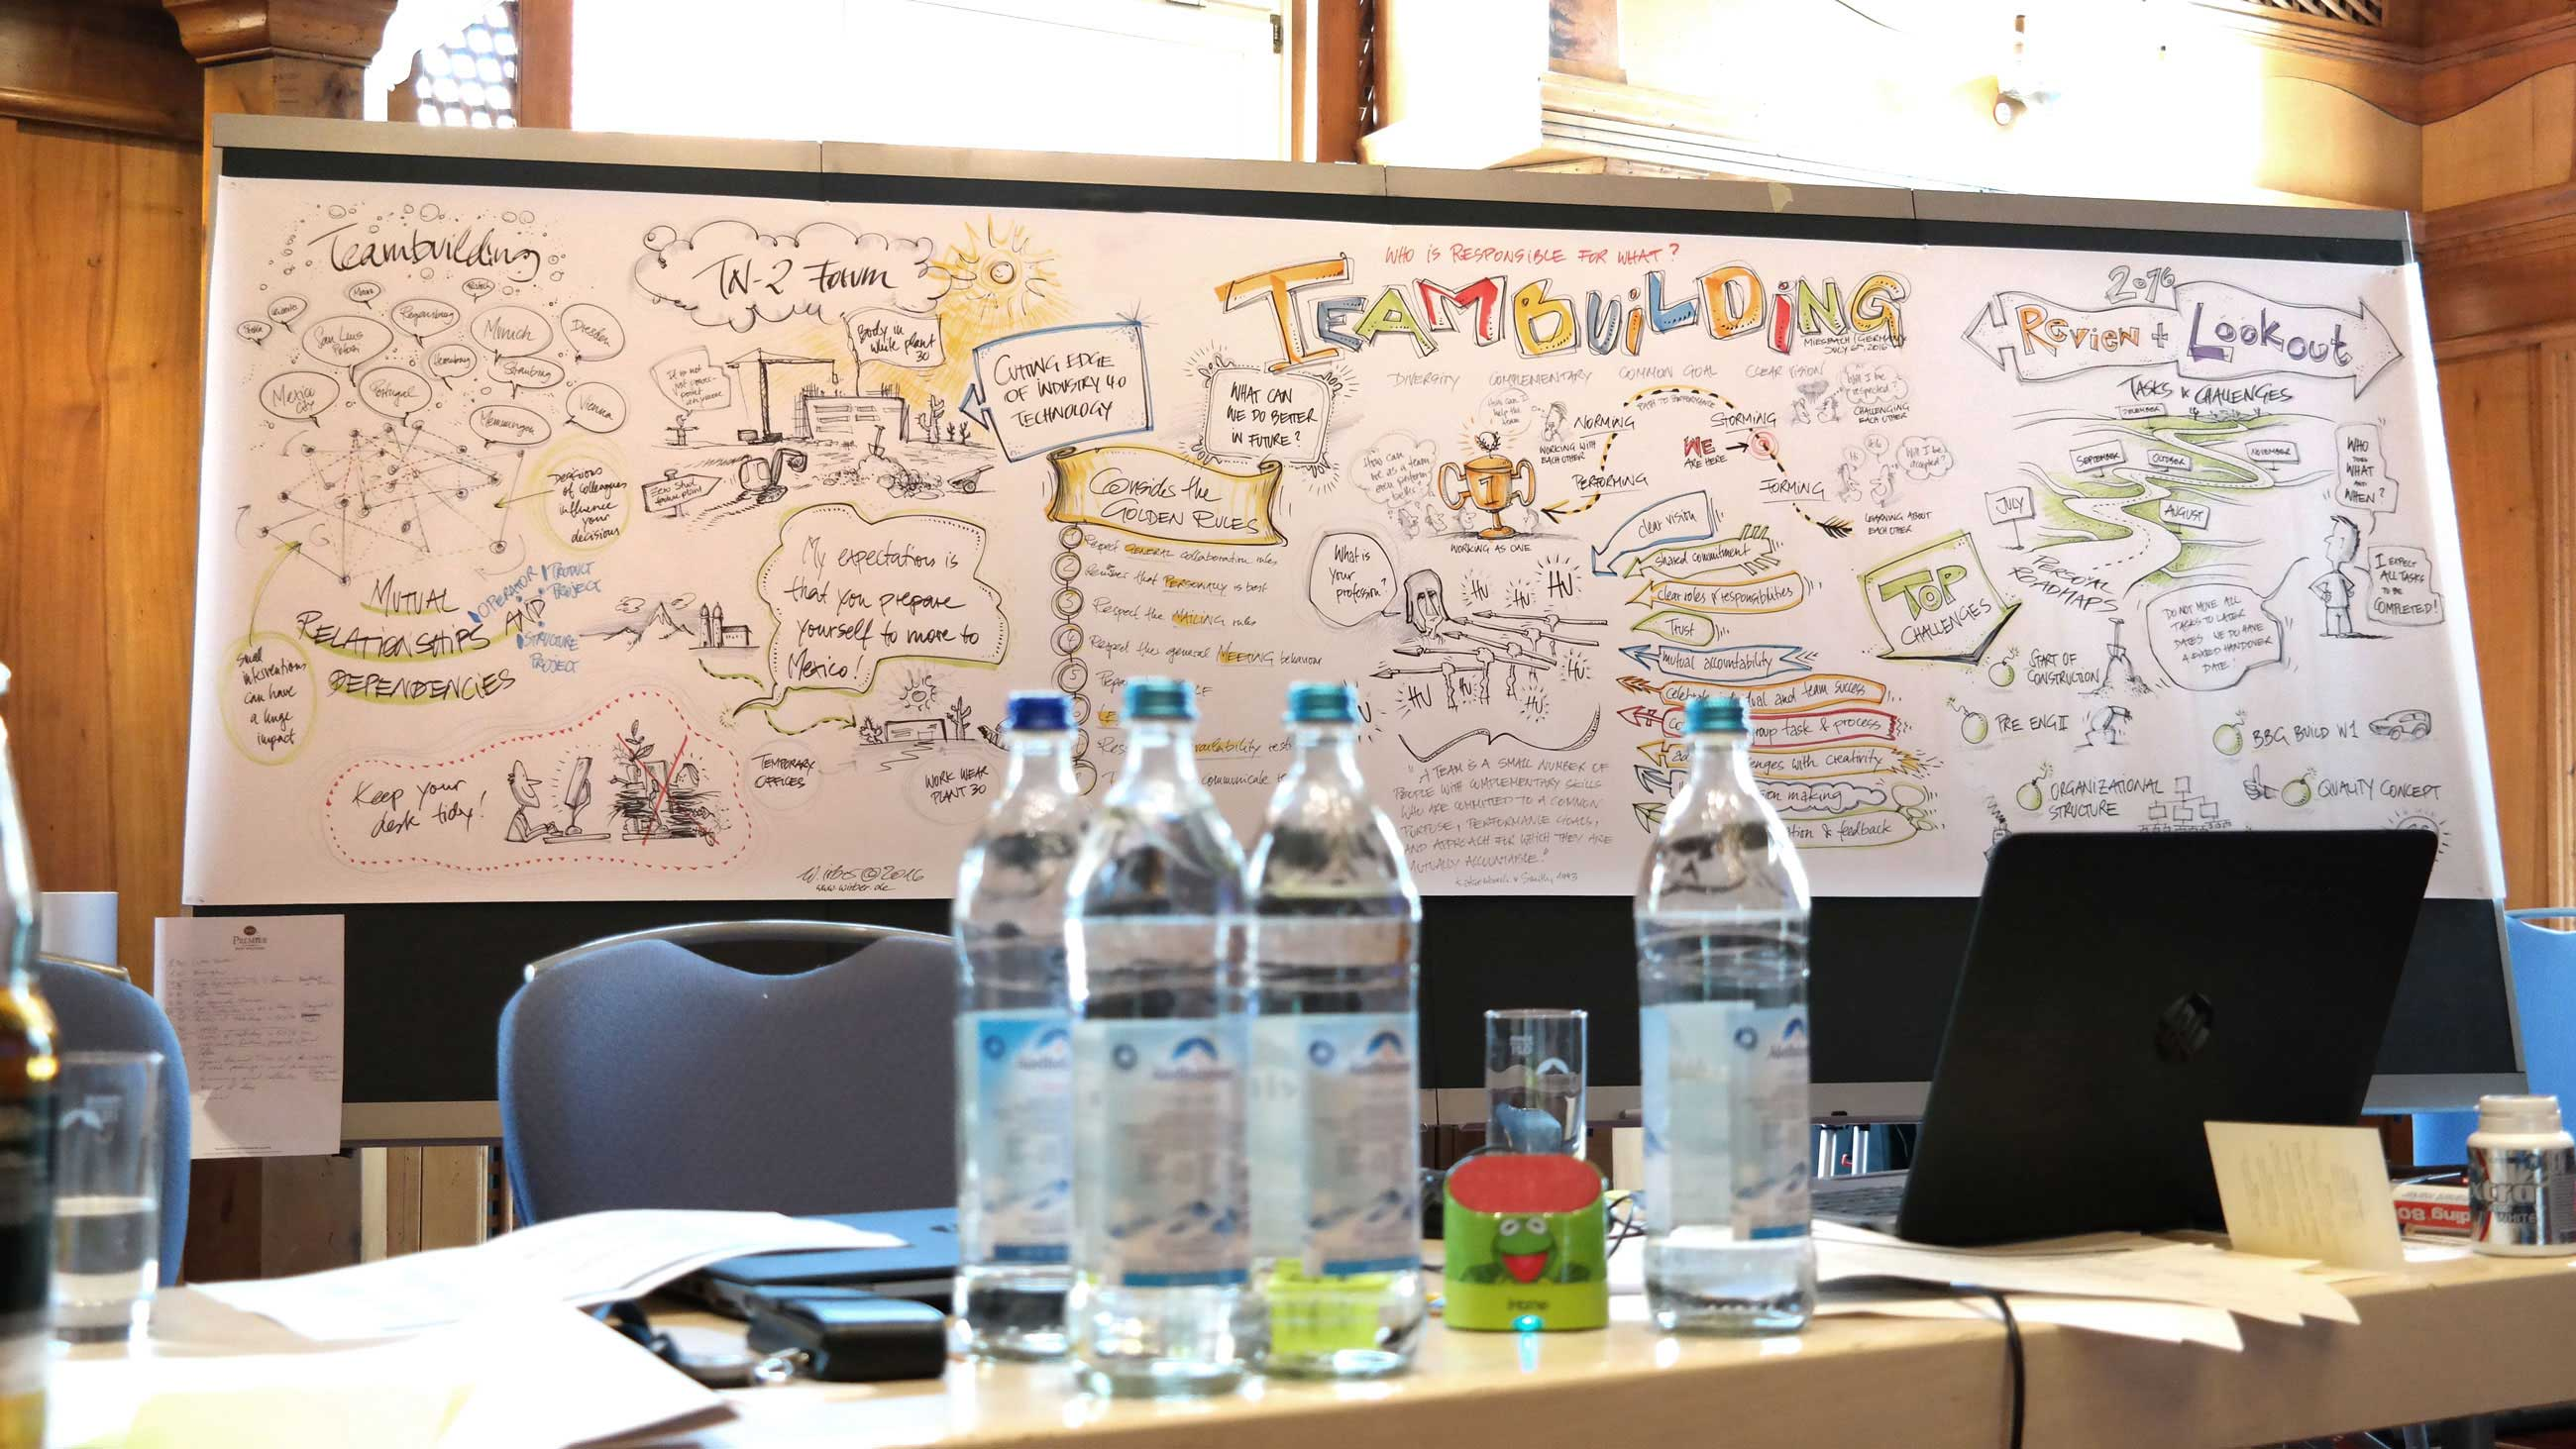 Graphic Recording Teambuilding